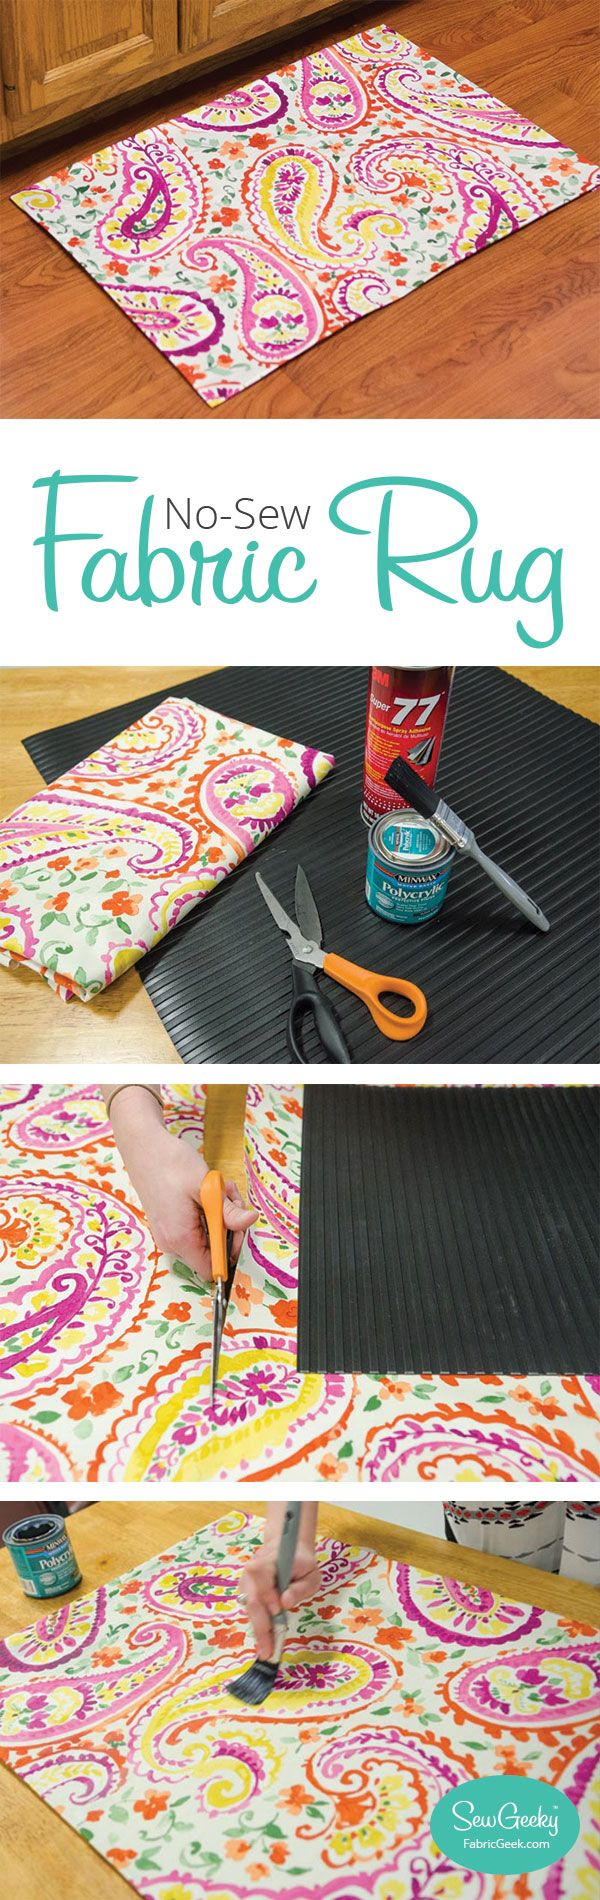 Make A No Sew Fabric Rug In Seconds It